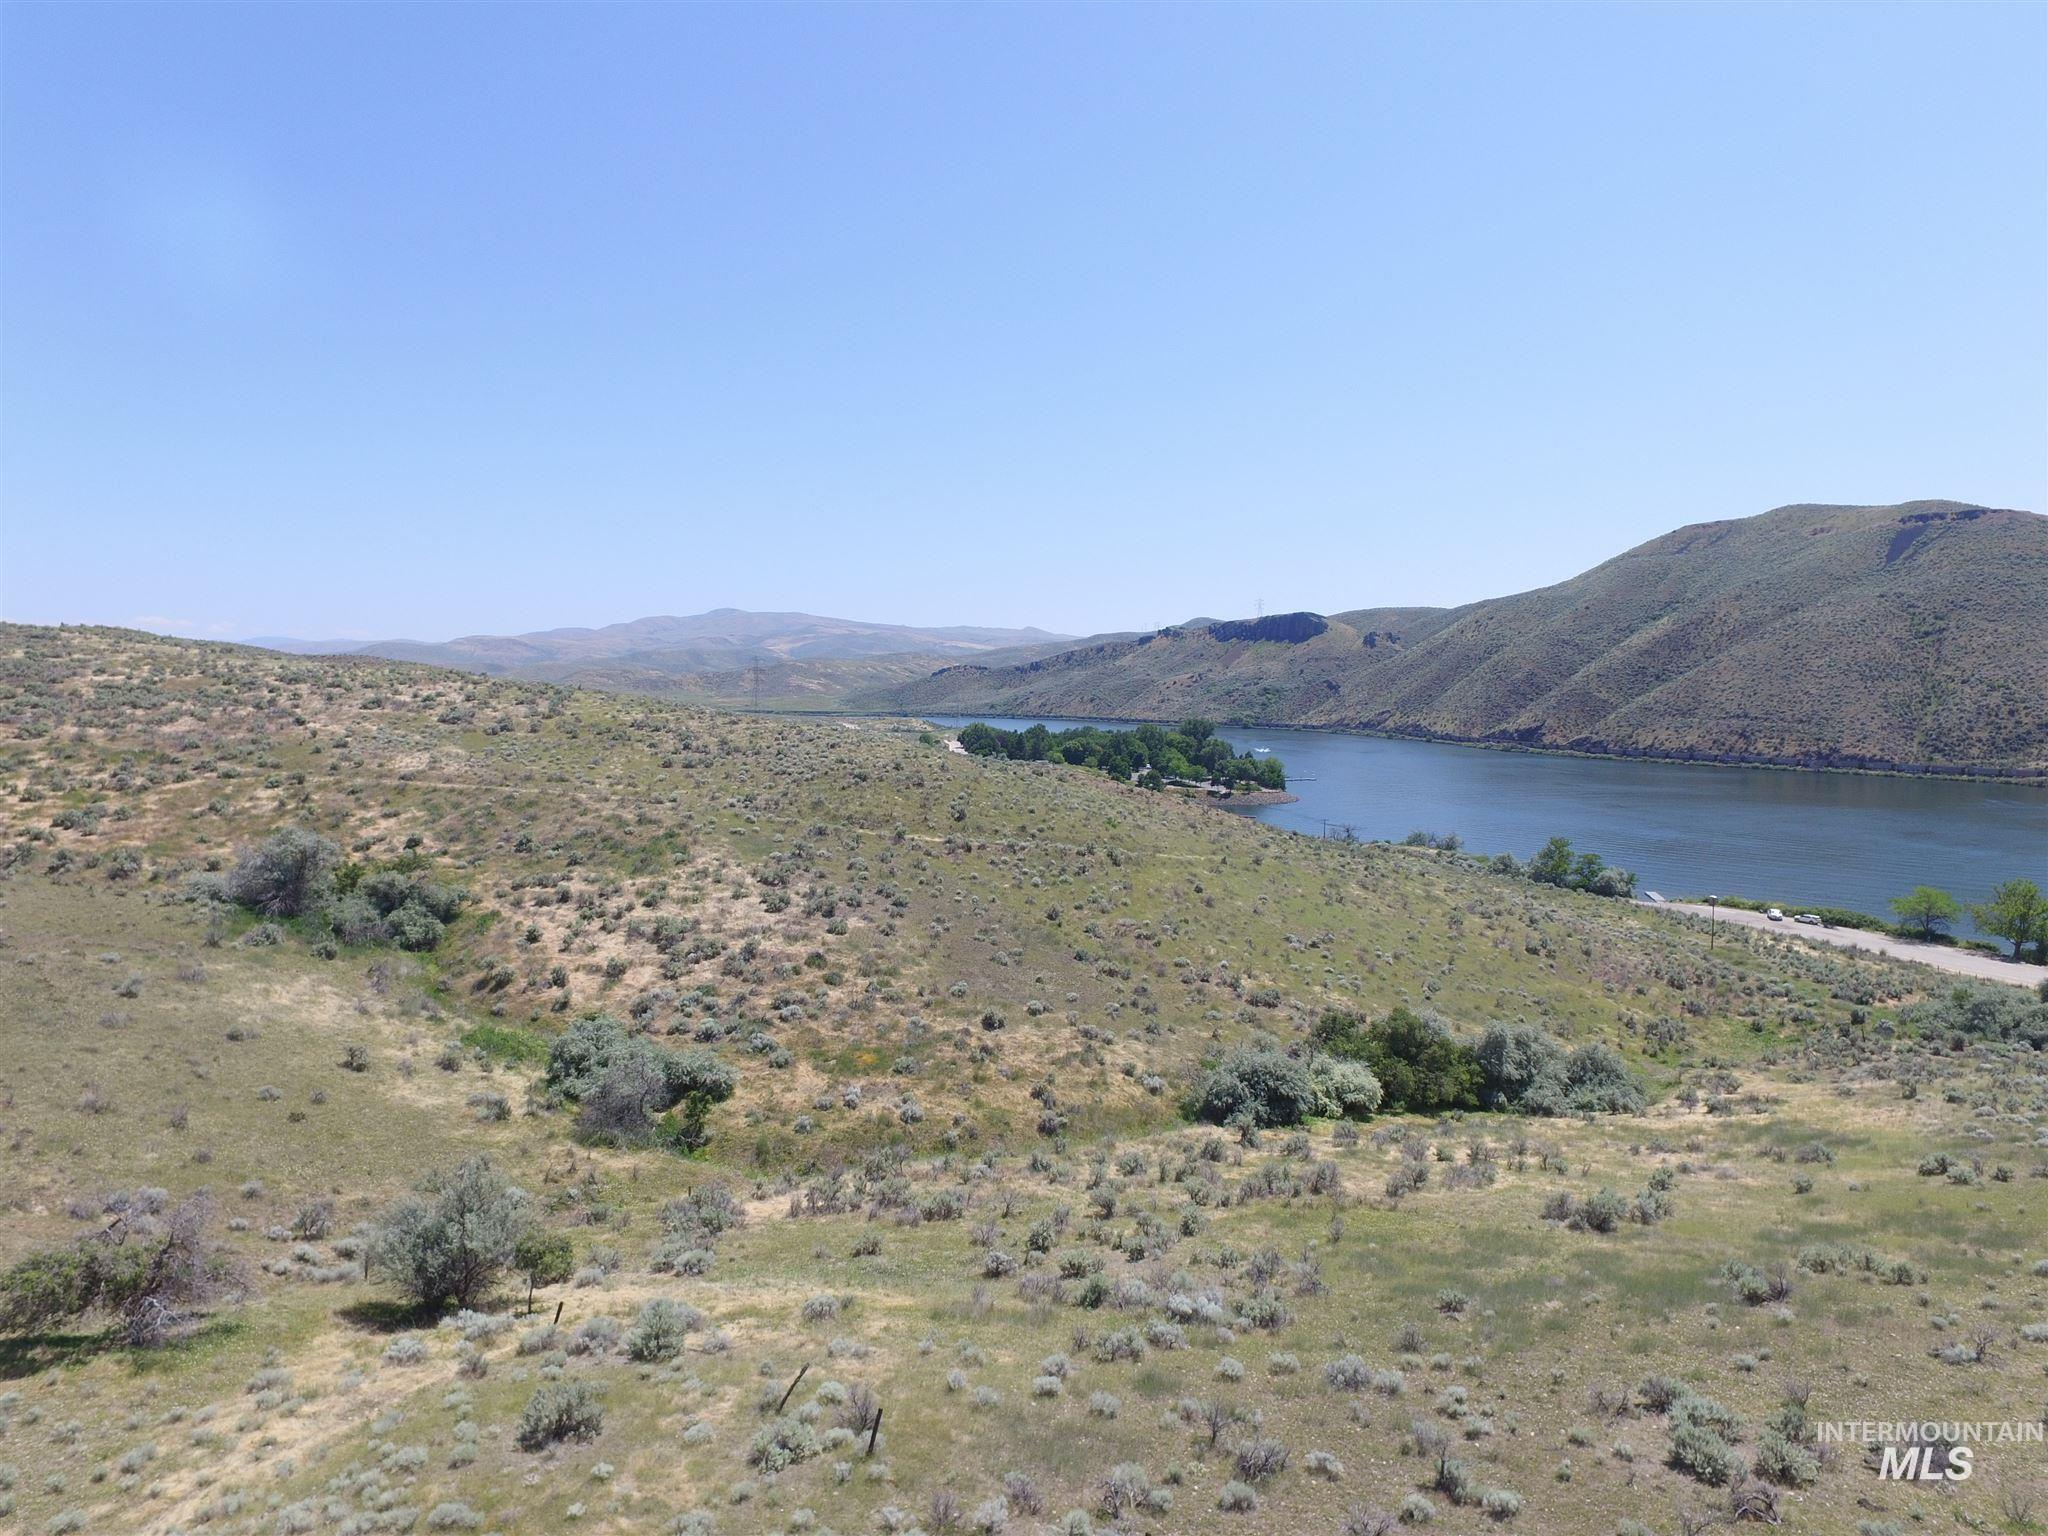 44X3 E Hwy 52, Emmett, Idaho 83617, Land For Sale, Price $1,100,000, 98787093